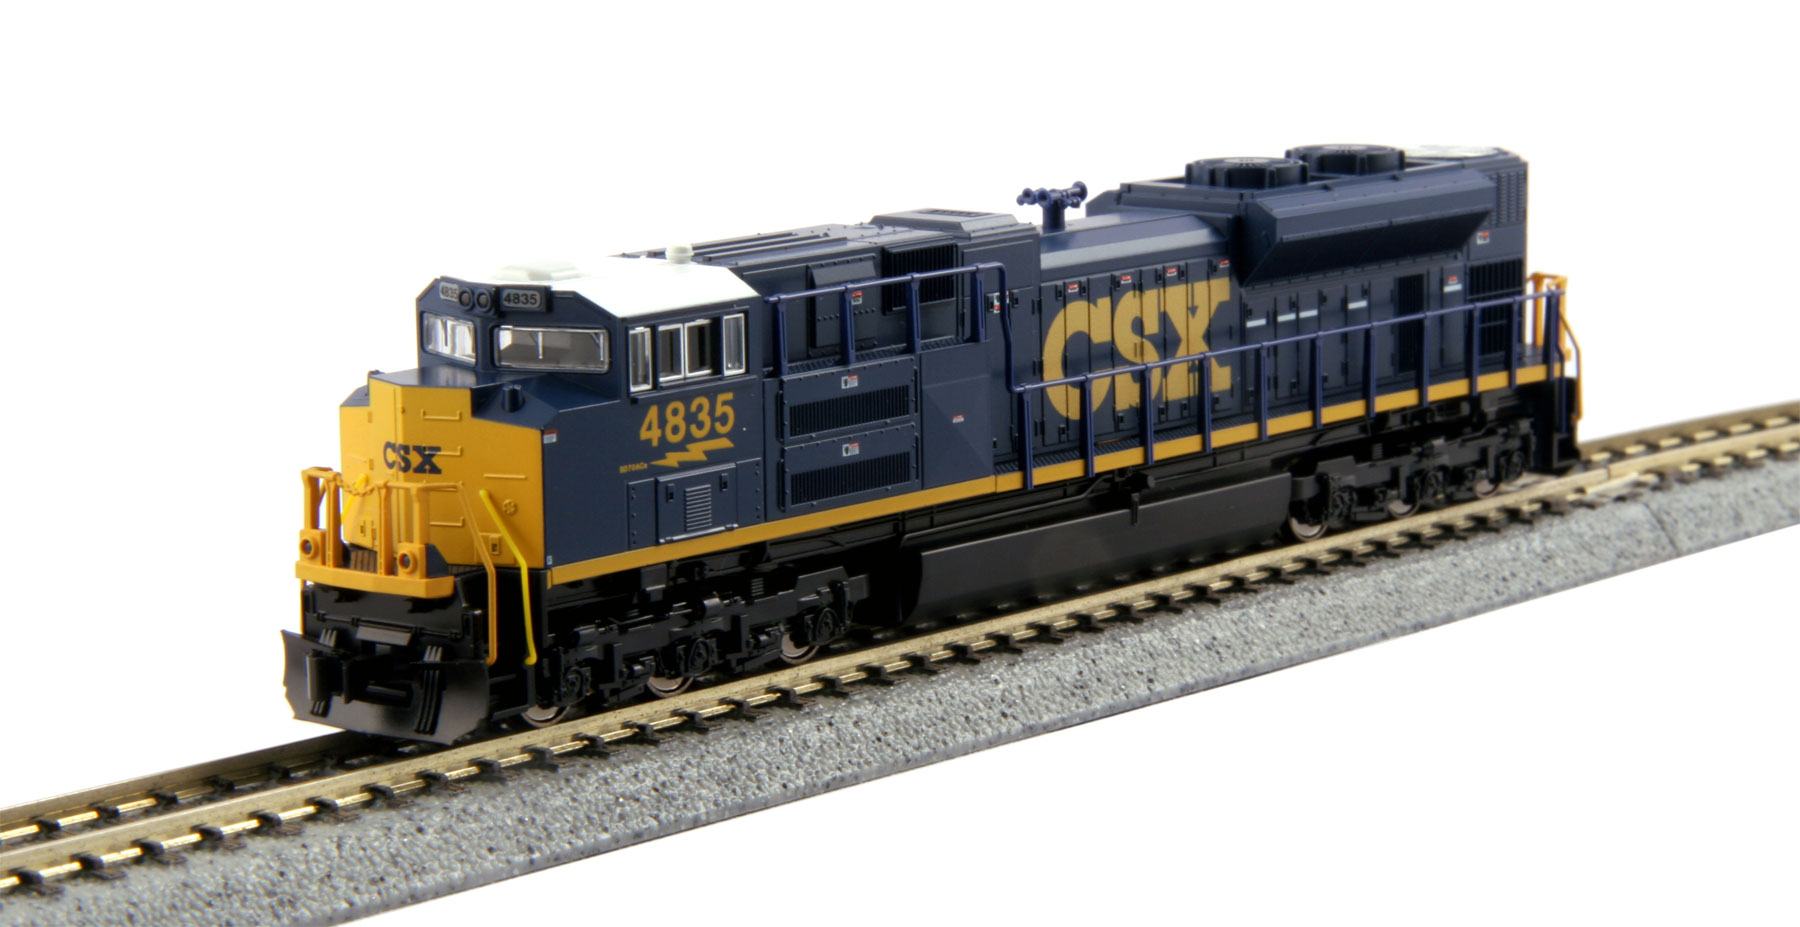 Kato 176-8436 N CSX EMD SD70ACe #4835 This is a Kato 176-8436 N Scale CSX EMD SD70ACe #4835. The SD70ACe is the latest in the line of EMD's 70 locomotives, an evolution of the SD70MAC, although its radiator design harkens more to that of the SD80/90 body. The SD70ACe has been designed to fit the latest EPA standards and regulations, and sports 4300 horsepower. The CSX Railroad has added 20 SD70ACe's to its rosters as of 2005, using them in service along the East coast from Florida all the way up into Quebec and Ontario. Model Features: Powerful Kato mechanism powered by a 5-pole flywheel motor and featuring a 9 3/4 minimum turning radius.Directional Headlight and illuminated, preprinted numberboards. Illuminated ditch lights.DCC Friendly mechanism ready for drop-in decoder installation.Condition: Factory New (C-9All original; unused; factory rubs and evidence of handling, shipping and factory test run.Standards for all toy train related accessory items apply to the visual appearance of the item and do not consider the operating functionality of the equipment.Condition and Grading Standards are subjective, at best, and are intended to act as a guide. )Operational Status: FunctionalThis item is brand new from the factory.Original Box: Yes (P-9May have store stamps and price tags. Has inner liners.)Manufacturer: KatoModel Number: 176-8436Road Name: CSXMSRP: $130.00Scale/Era: N ScaleModel Type: Diesel LocoAvailability: Ships in 1 Business Day!The Trainz SKU for this item is P12170802. Track: 12170802 - No Location Assigned - 001 - TrainzAuctionGroup00UNK - TDIDUNK